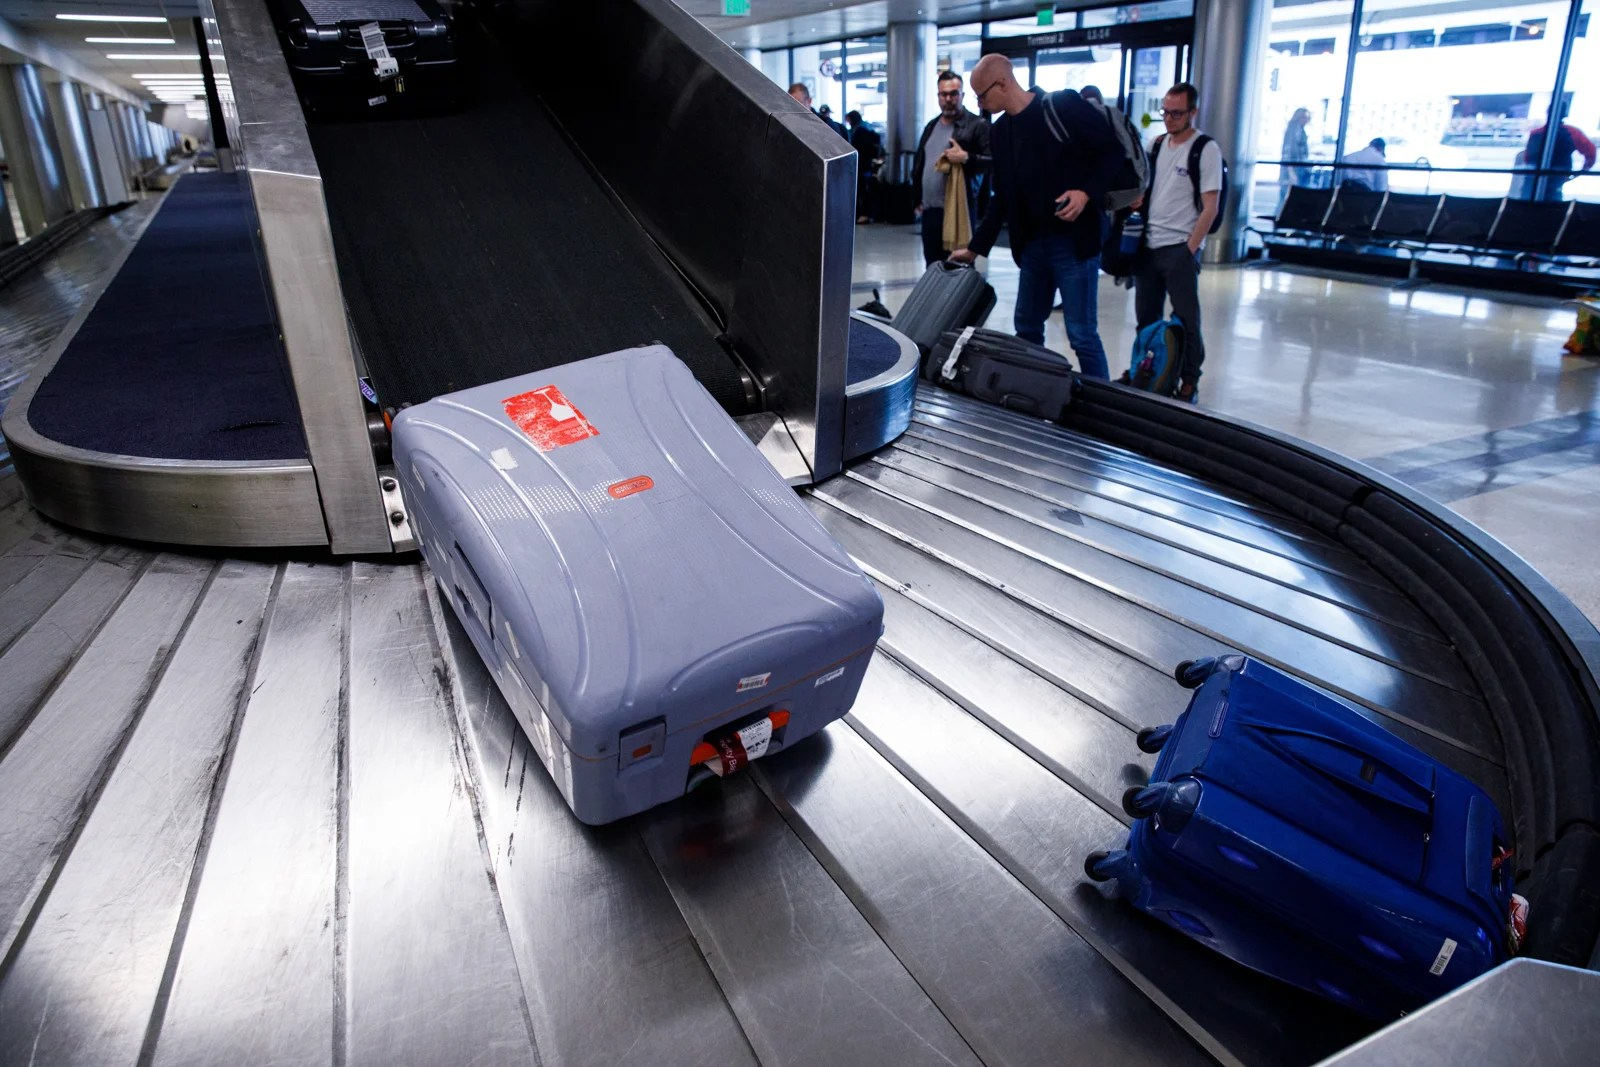 This airline just increased bag fees to $35, the highest in the U.S.